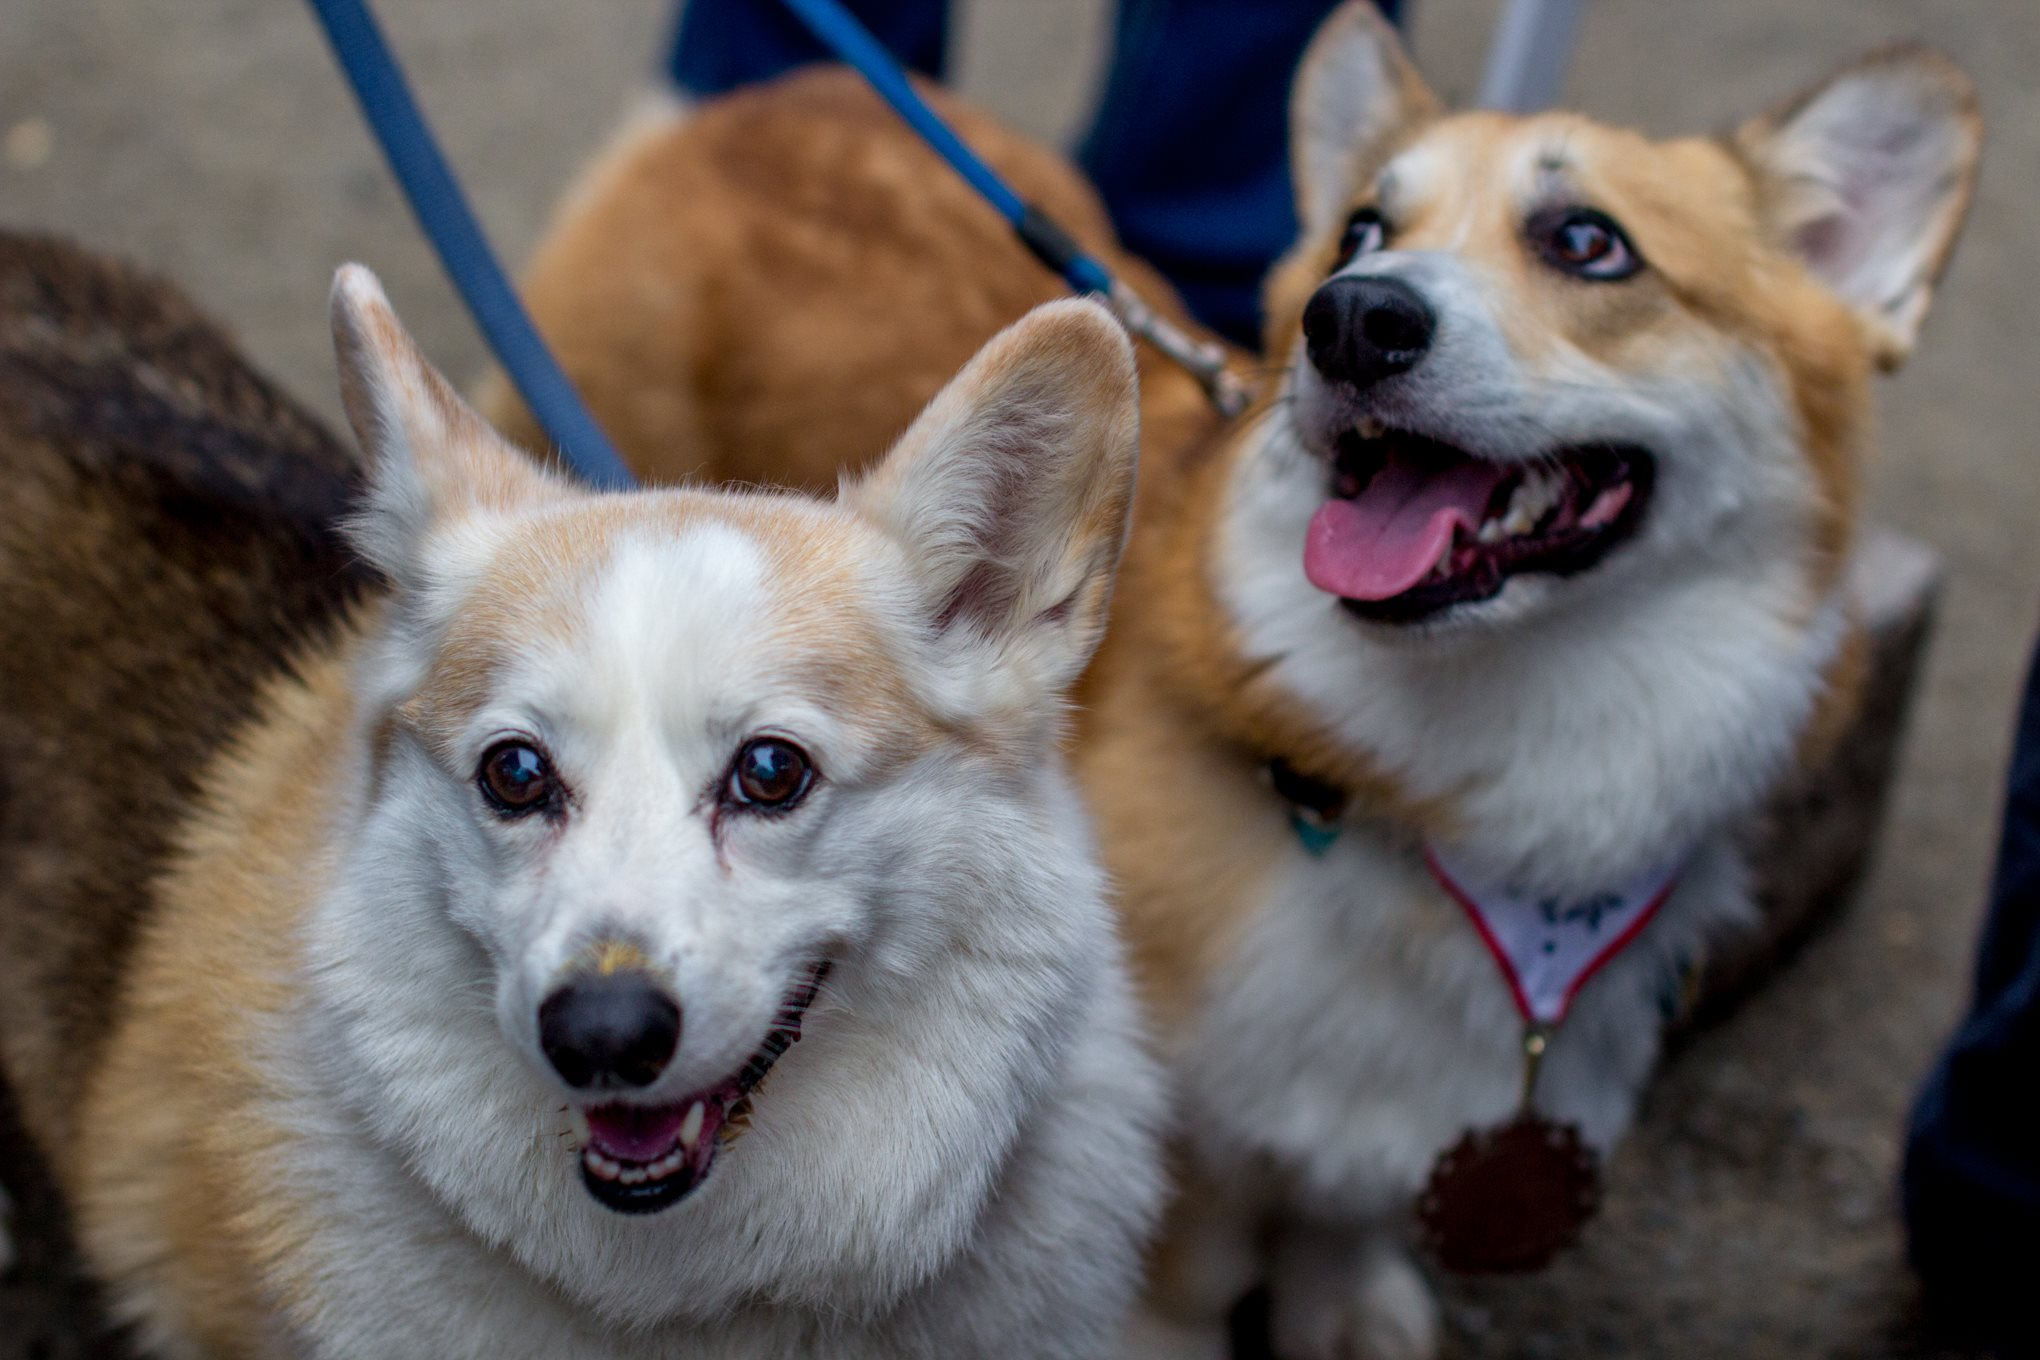 "There are few things in life we love more than a bunch of dogs all in one place that we can go nutty over! So naturally, Derpin' in DC: Corgtoberfest was right up our alley! Hundreds of stumpy-legged fluff monsters and their humans descended on Tysons Biergarten for the fourth annual Corgi meetup, though it was an all-inclusive event with many other breeds making an appearance as well. There was a costume contest for the dogs and stein-drinking competitions for their two-legged counterparts, followed by several heats of corgi races. Boy can those stumpy little furballs run! You may see some familiar faces as several ""insta stars"" were present, including Navy, Moogle, Waffles, Jasper and Biscuit. Plus, our friends from We The Dogs DC were repping! (Image: Courtesy IG user @wethedogsdc)"